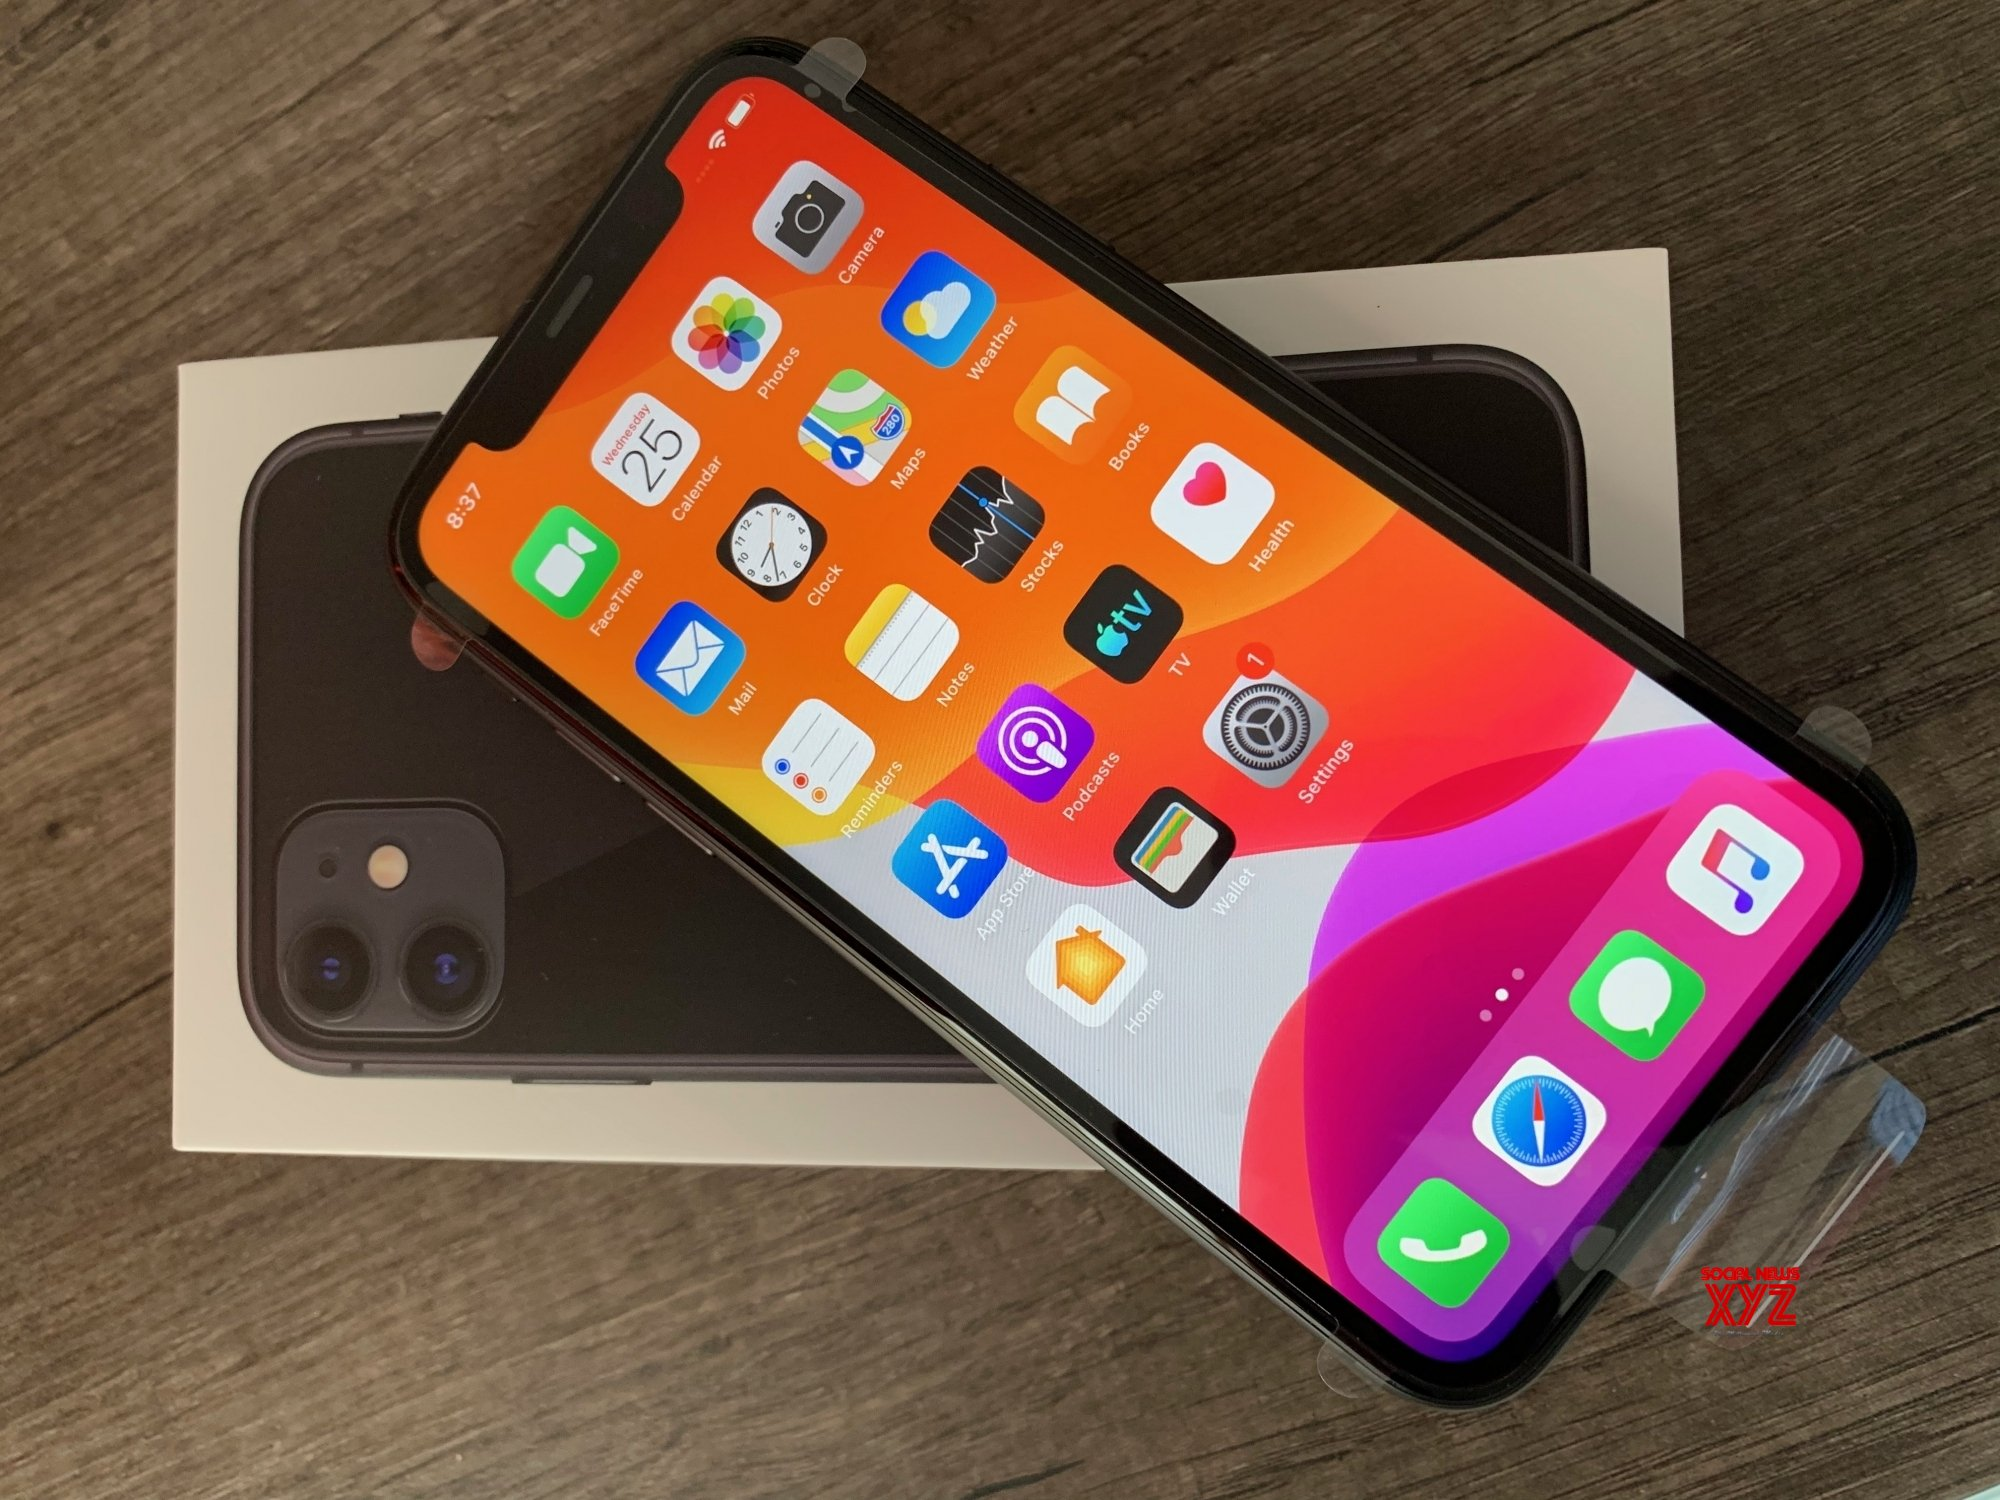 IPhone 11 available at Celcom starting today